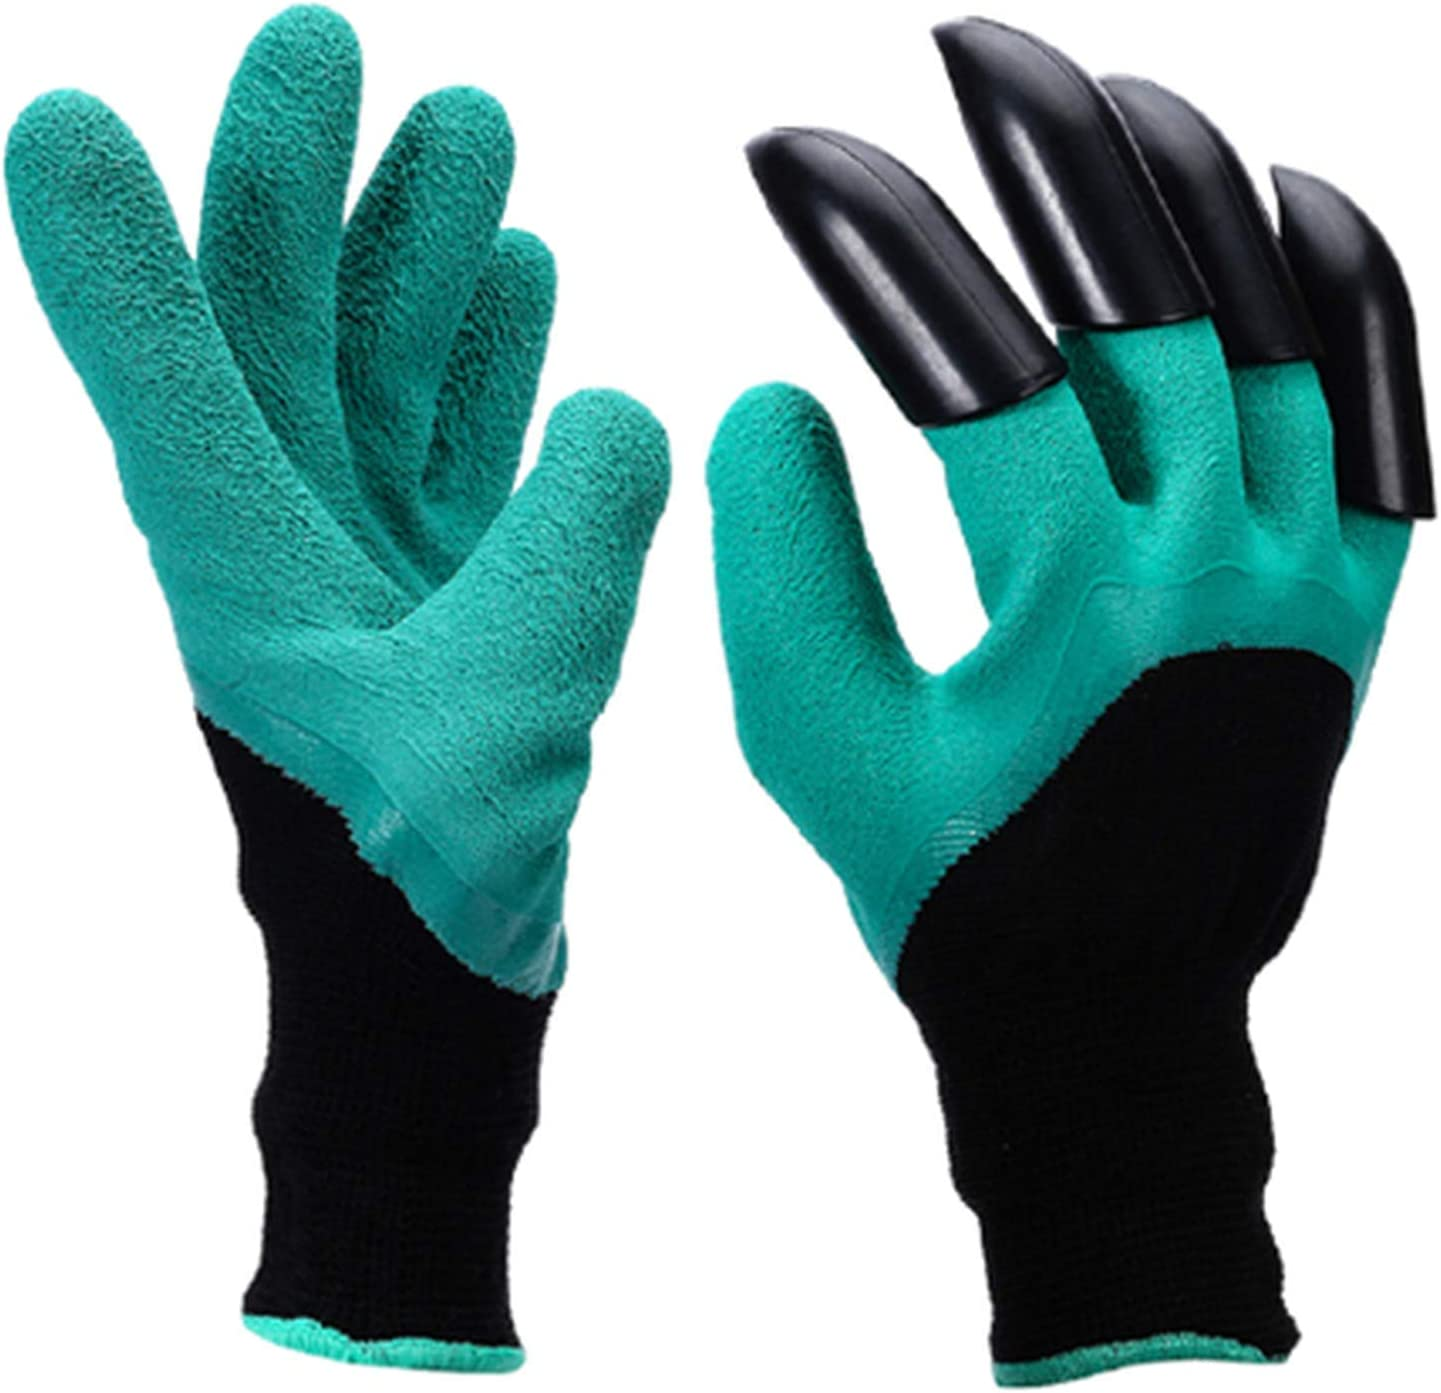 Gardening Gloves Thorn Resistant Safe Garden Genie Gloves with Claws for Digging Planting Best Gift for Gardeners